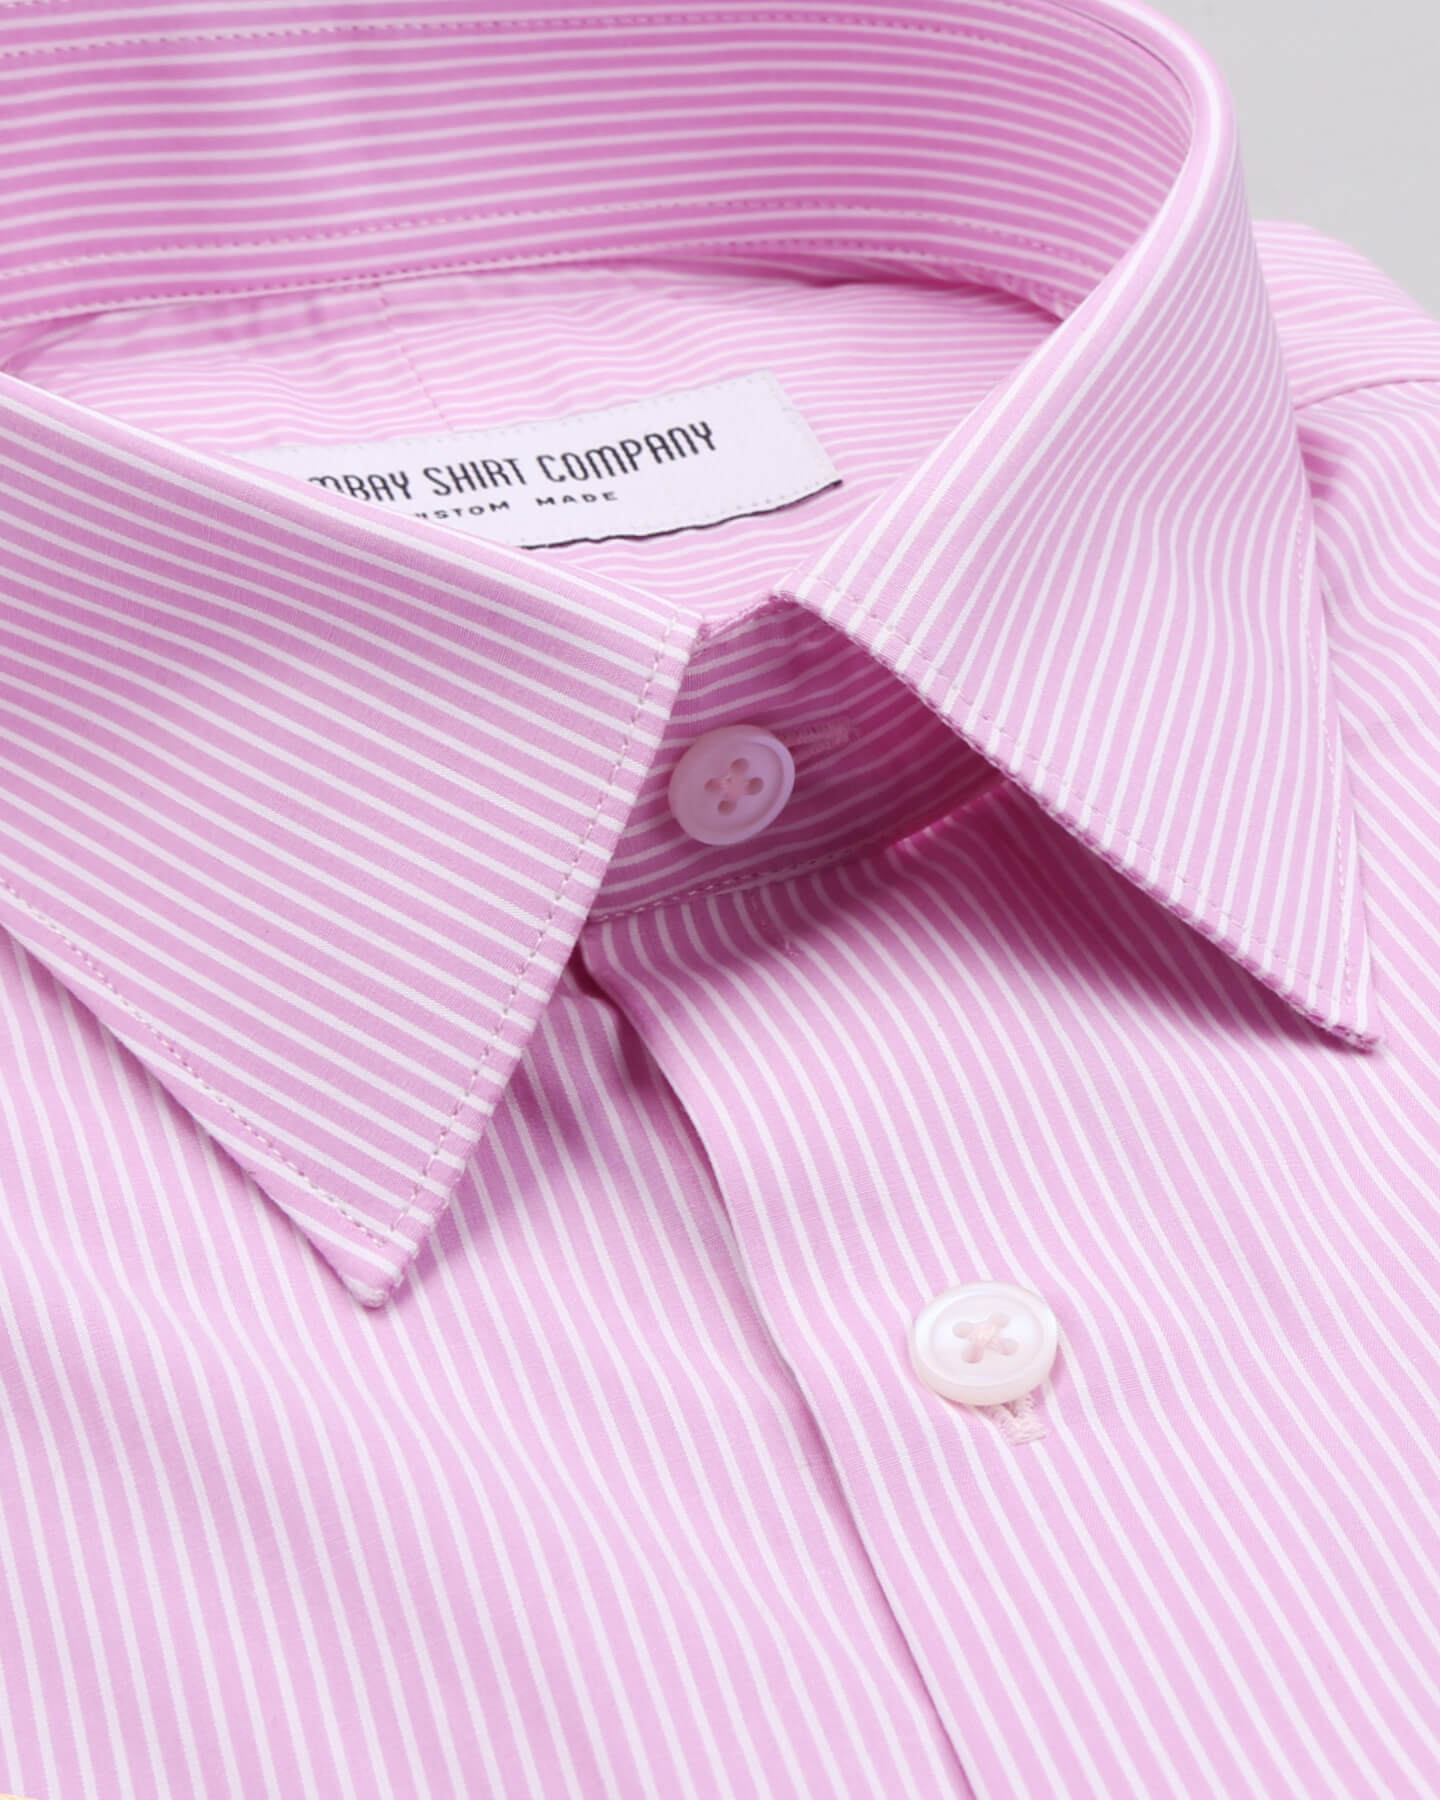 Pinstriped Pink Shirt